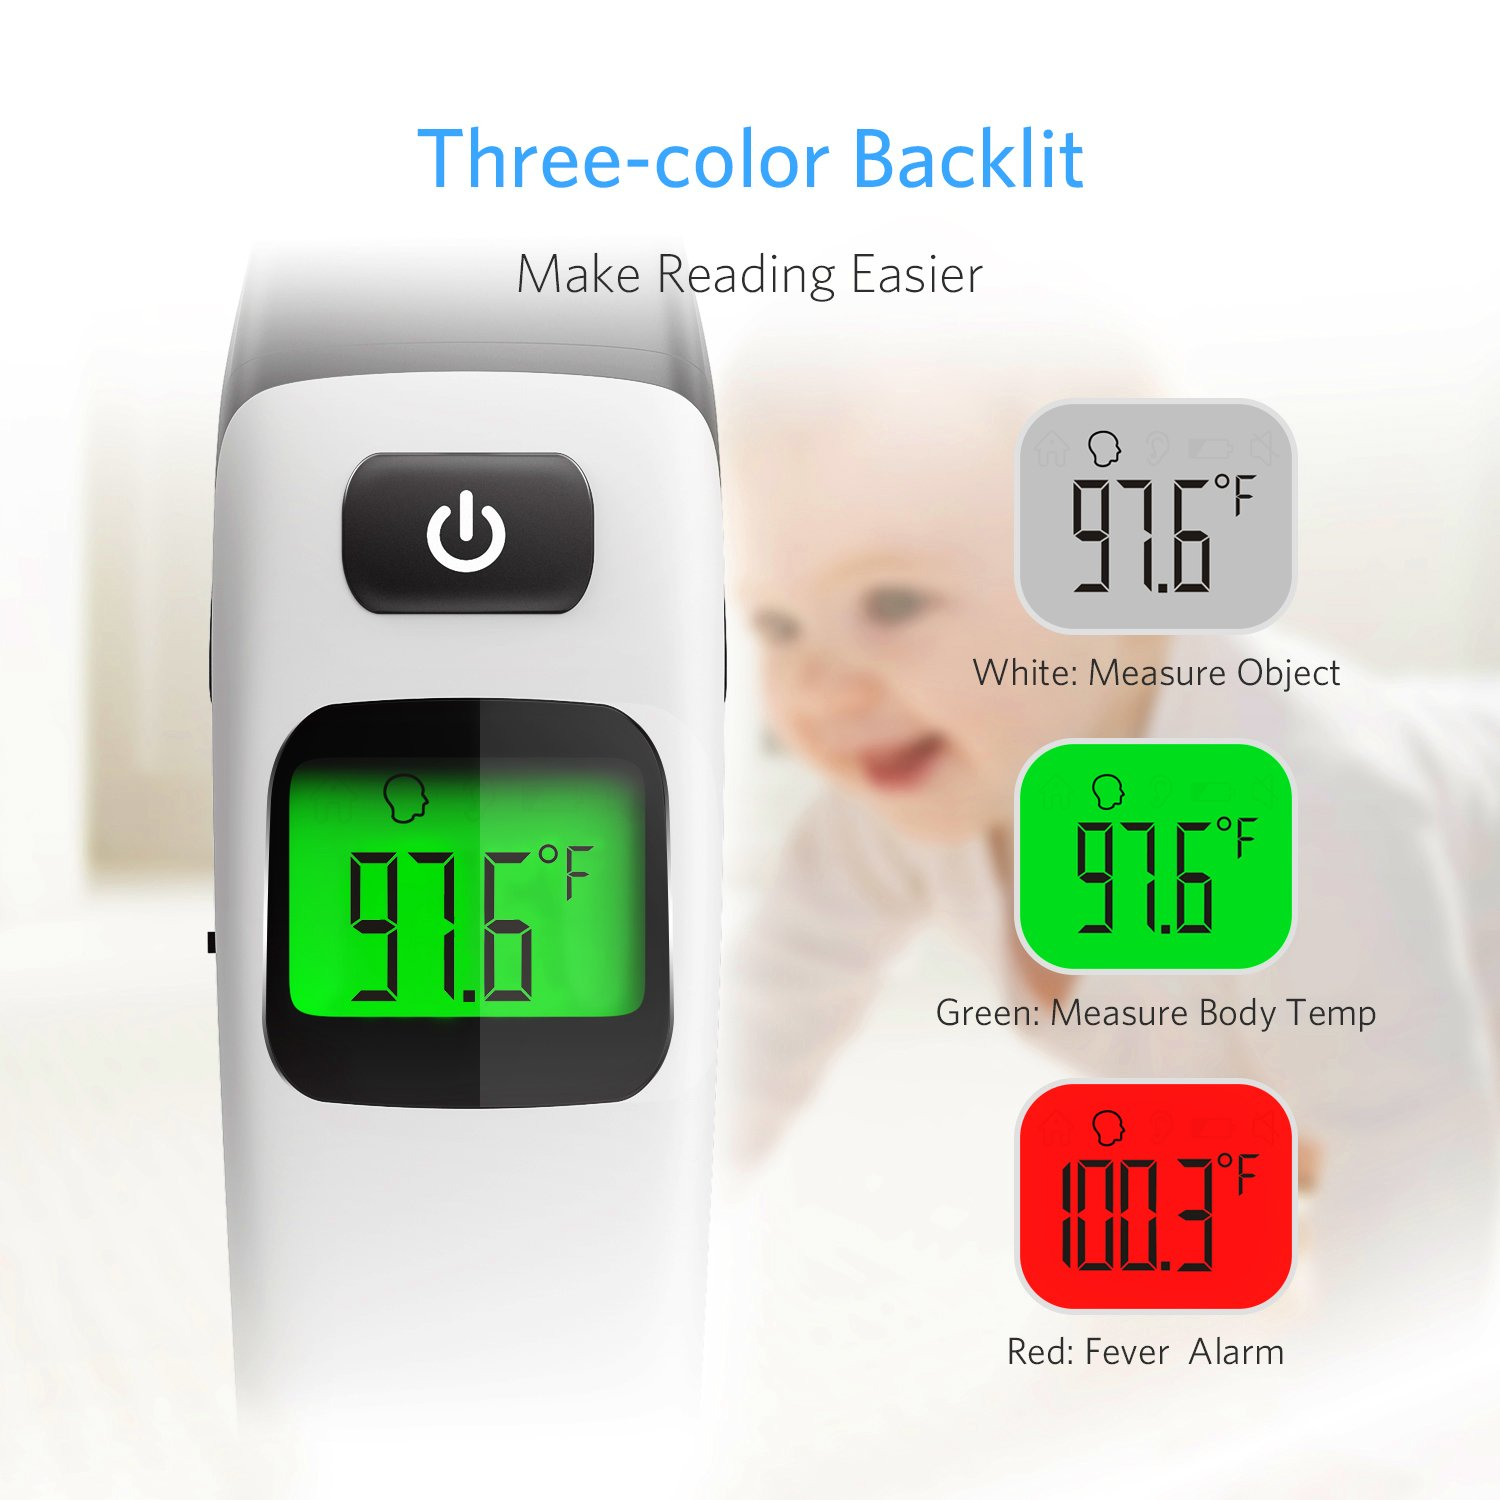 HOMIEE Black Thermometer, Ear Thermometer for Kids, Non Contact Infrared Digital Forehead Thermometer with Fever Alert and Three Color Backlit for Baby and Adults, FDA and CE Certifications Approved by HOMIEE (Image #3)